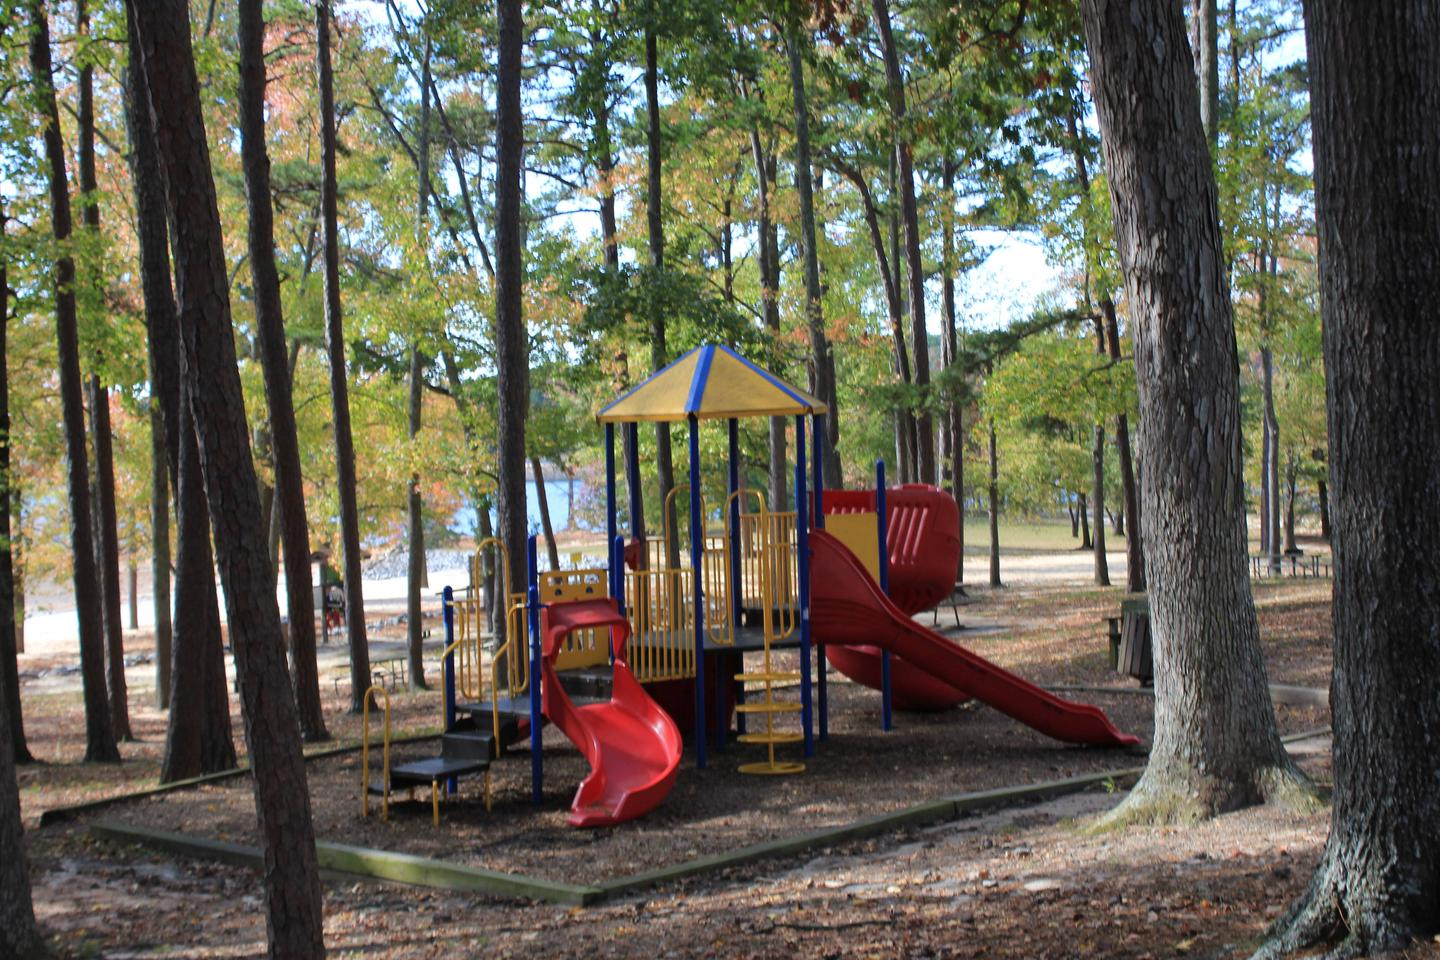 NBP DUA PlaygroundWelcome to North Bend Park! This is the playground in the Day Use Area located in North Bend Park.